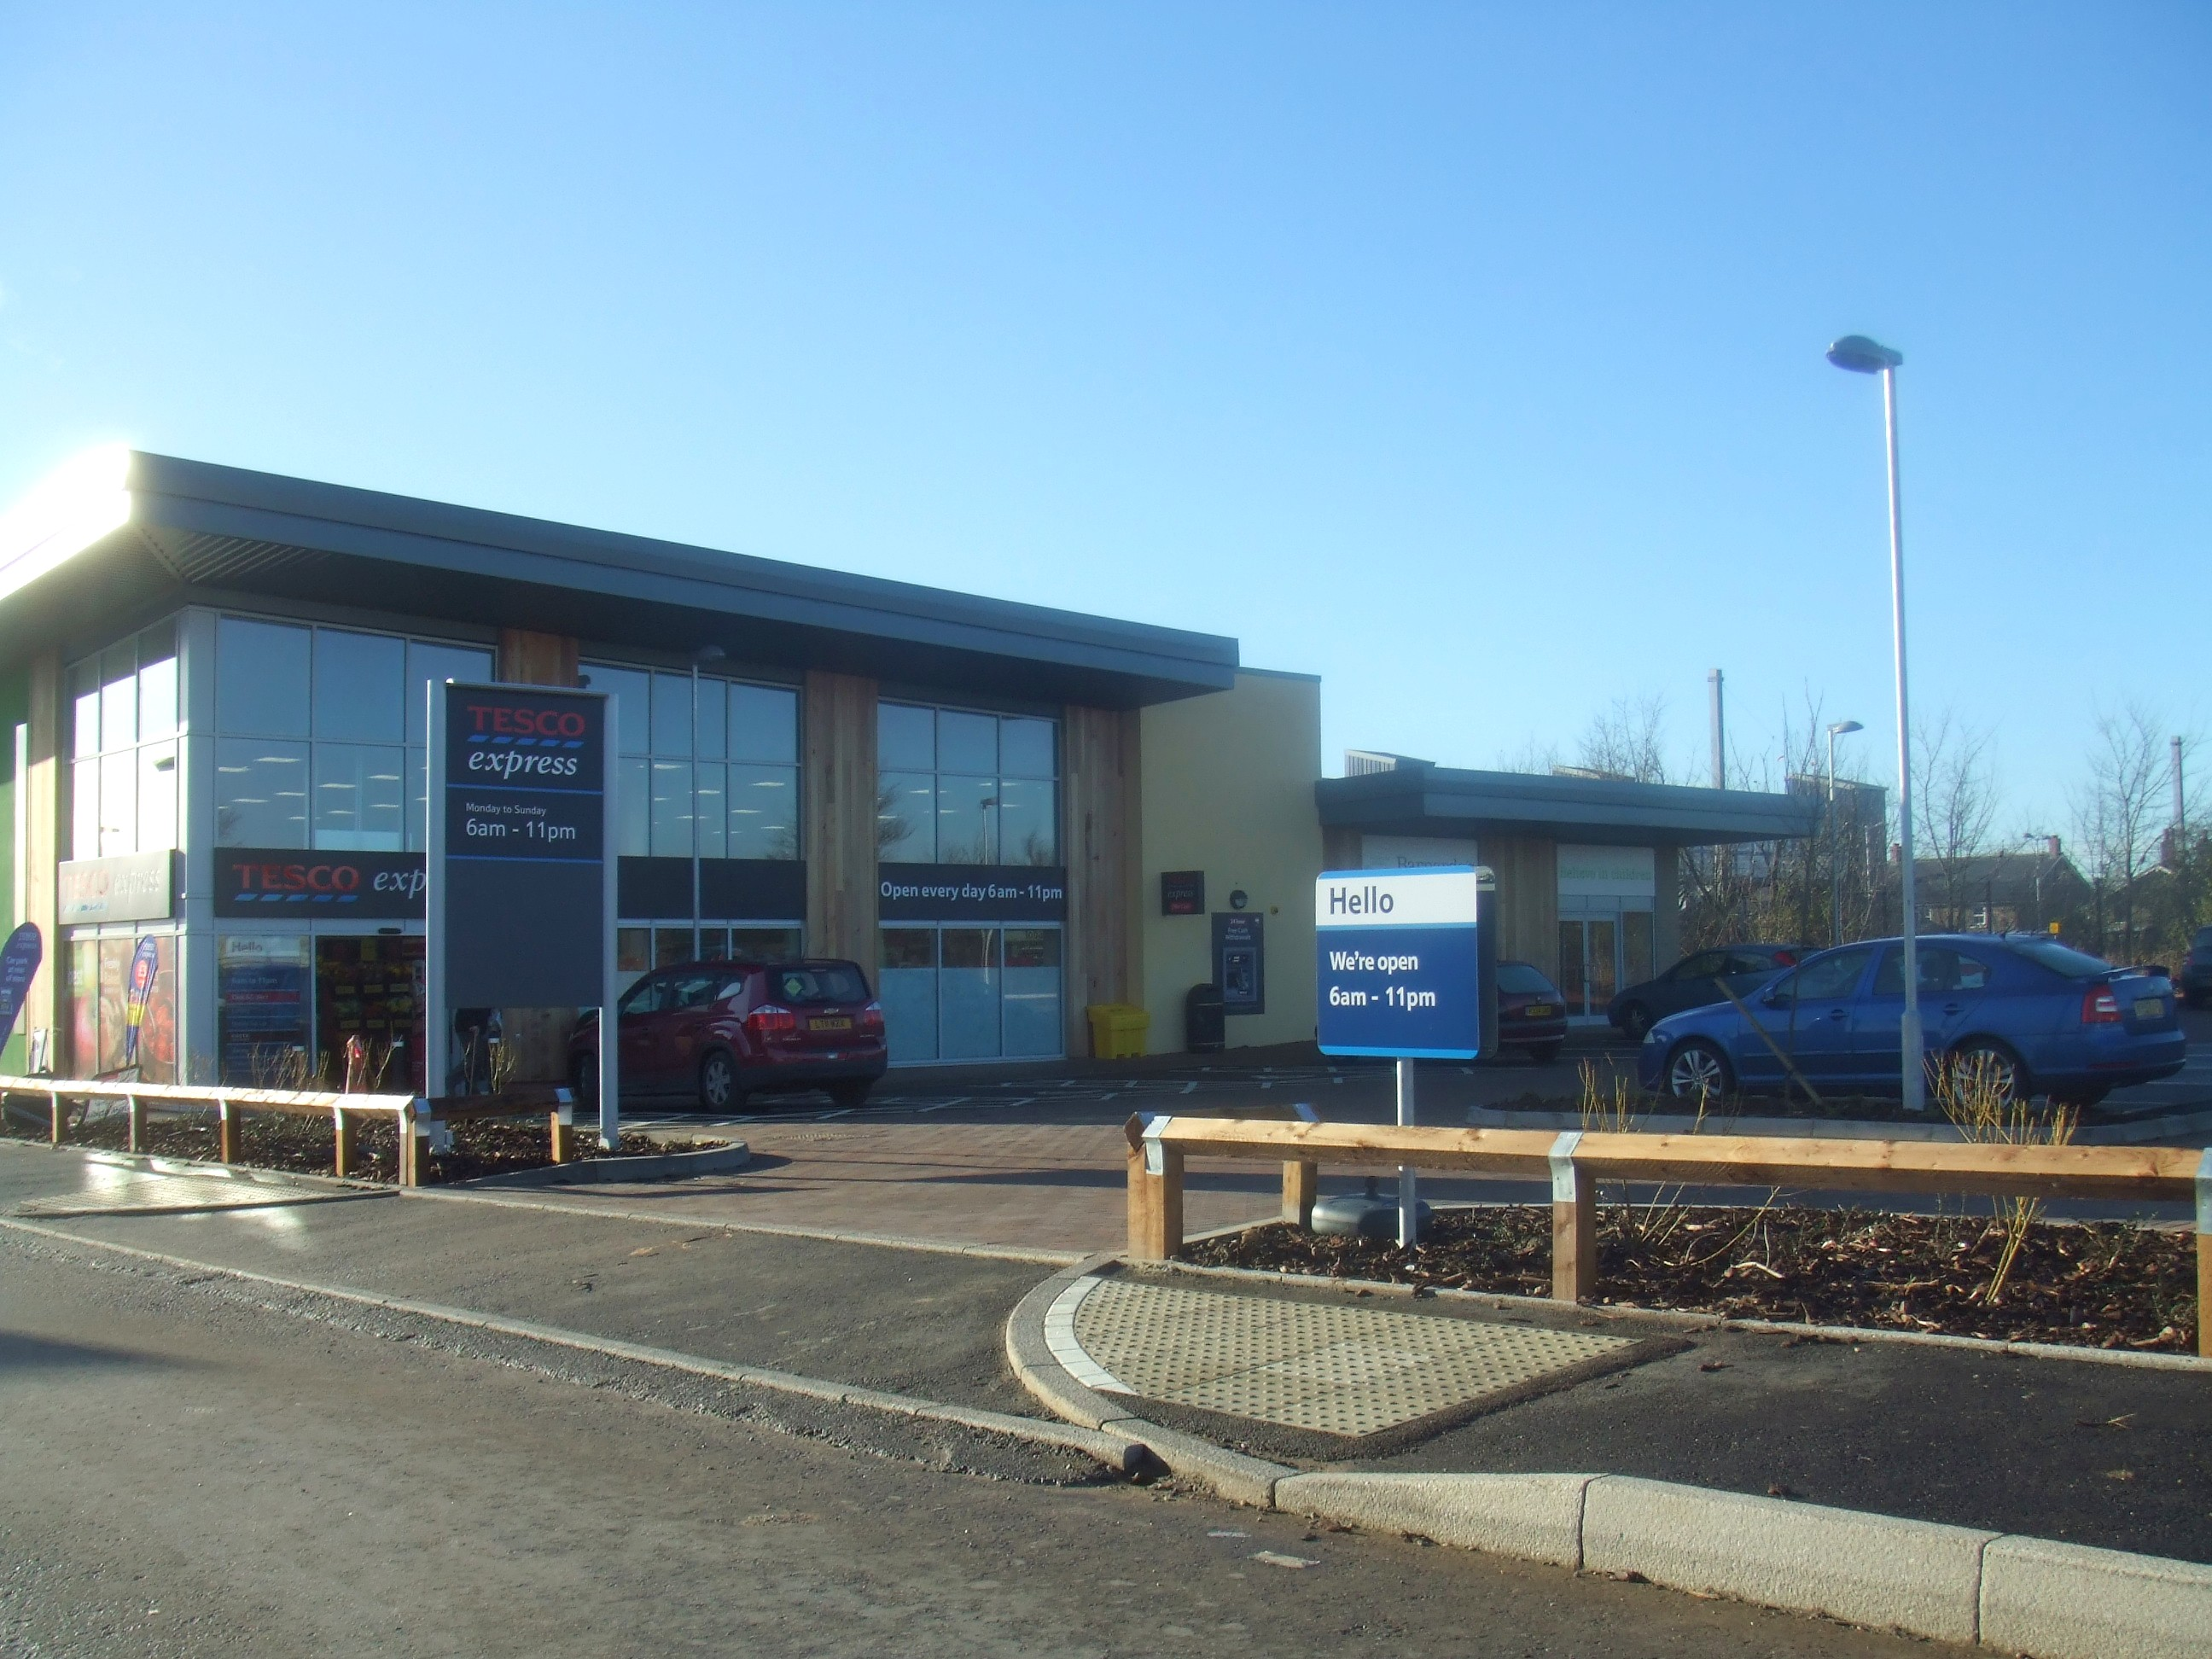 Tesco Express At Loves Farm Newly Opened In December 2013